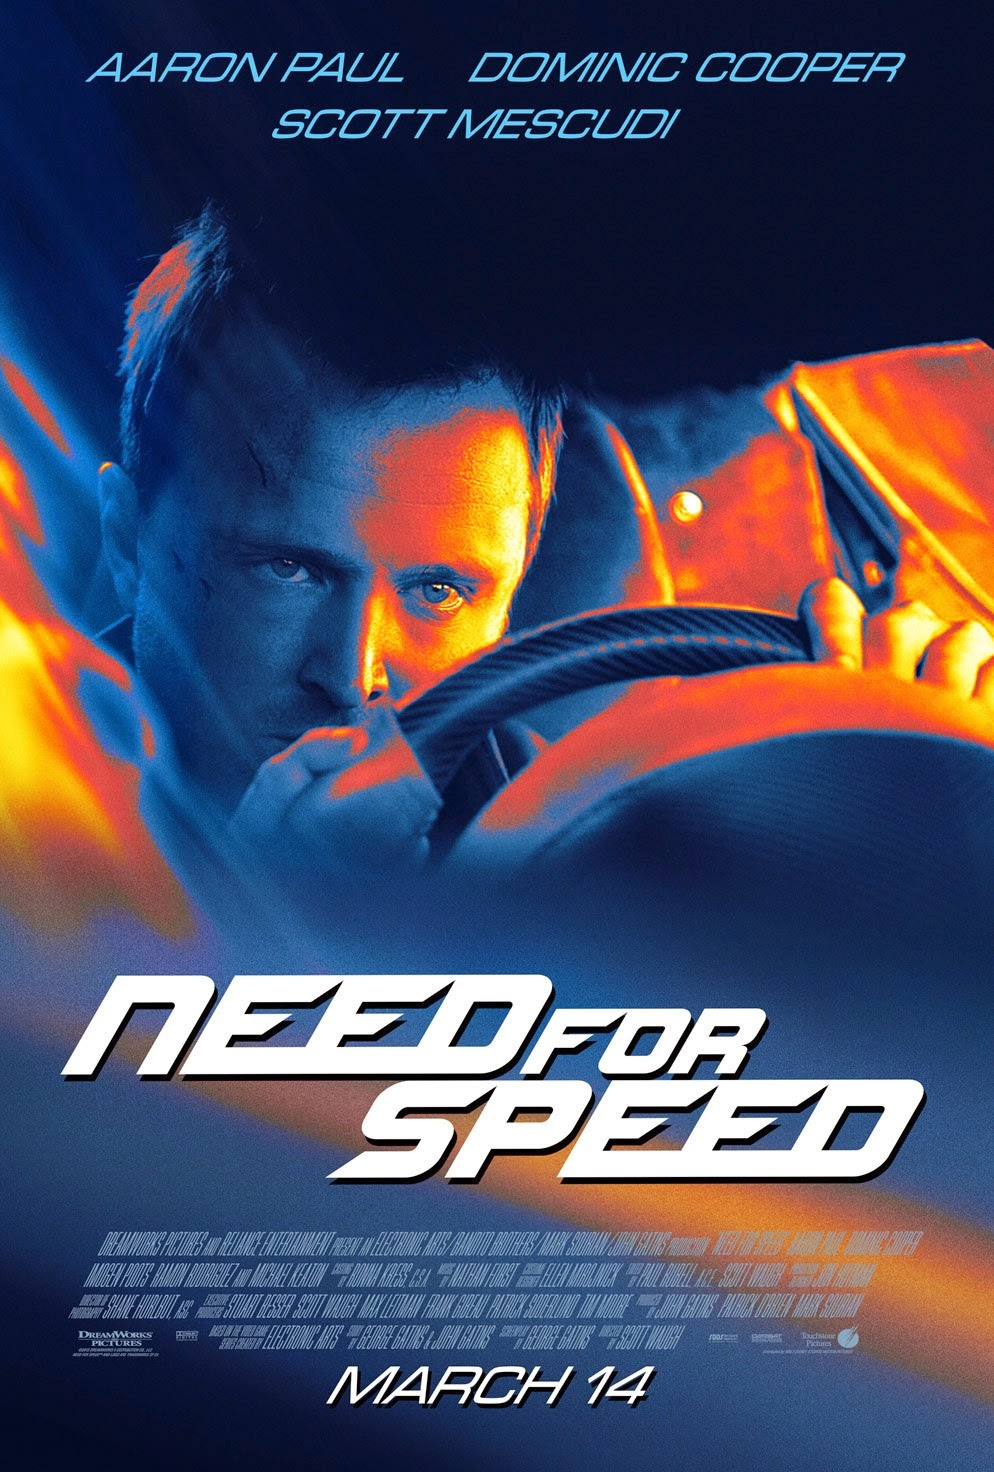 Potreba za brzinom (Need for speed) 2014